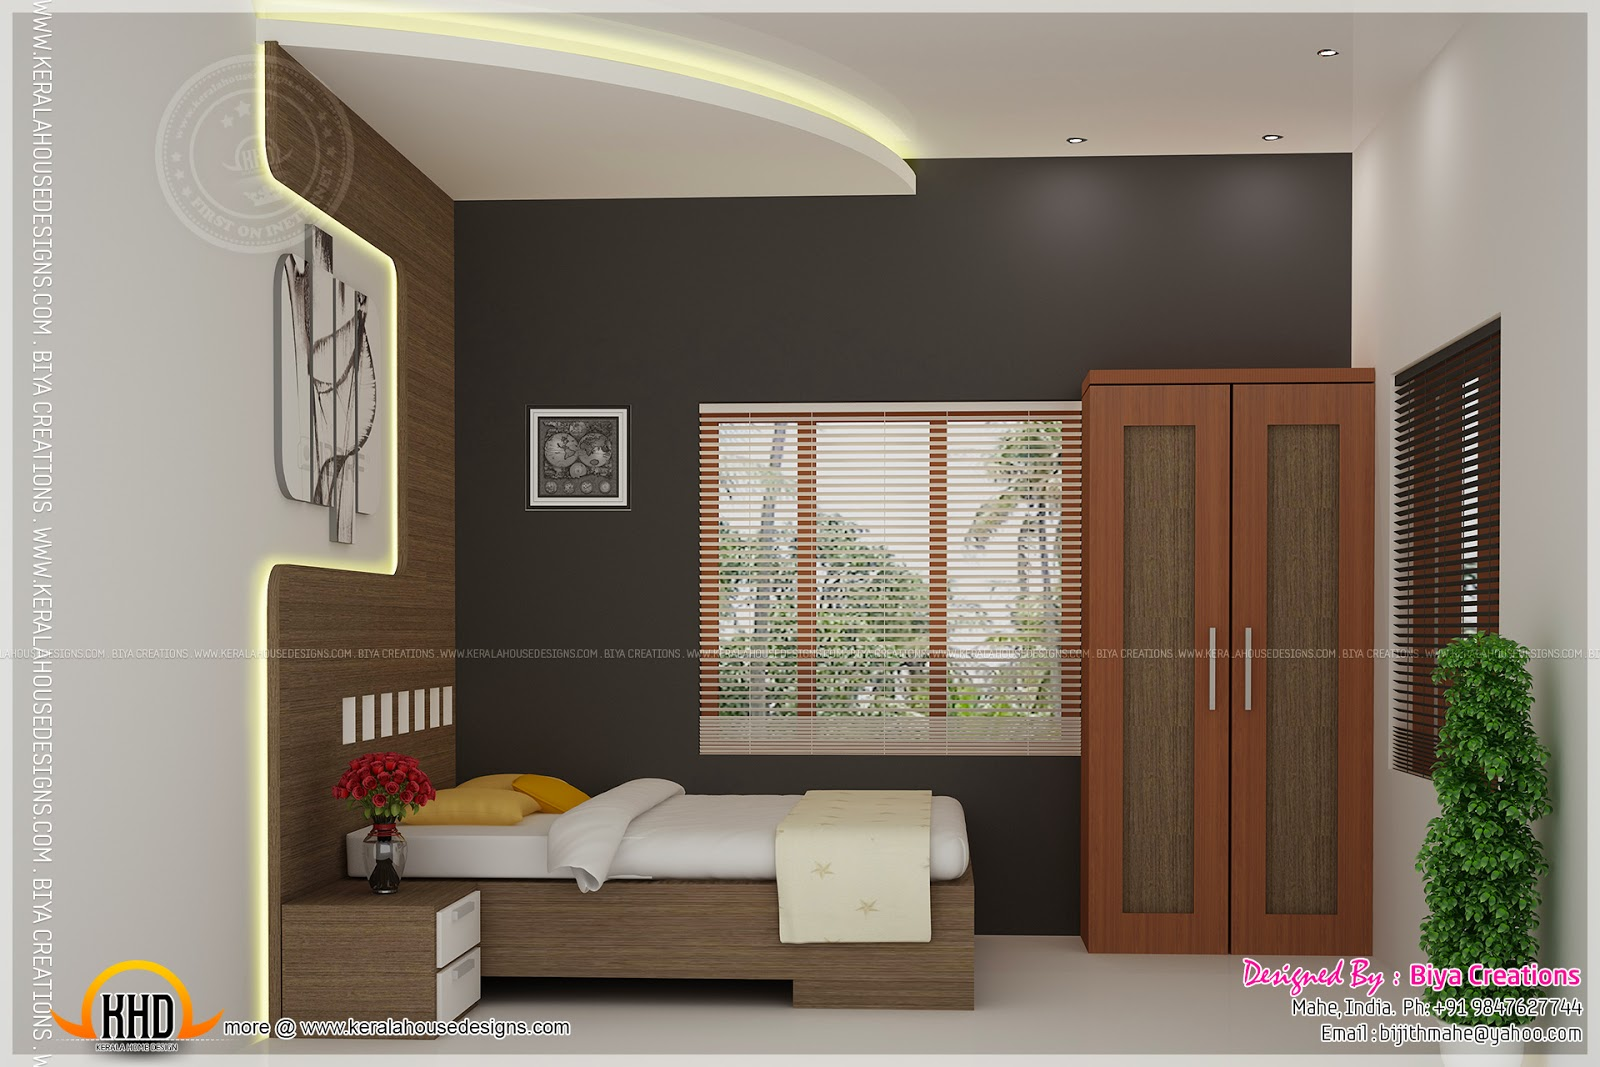 Bedroom kid bedroom and kitchen interior kerala home for Indian small house design 2 bedroom